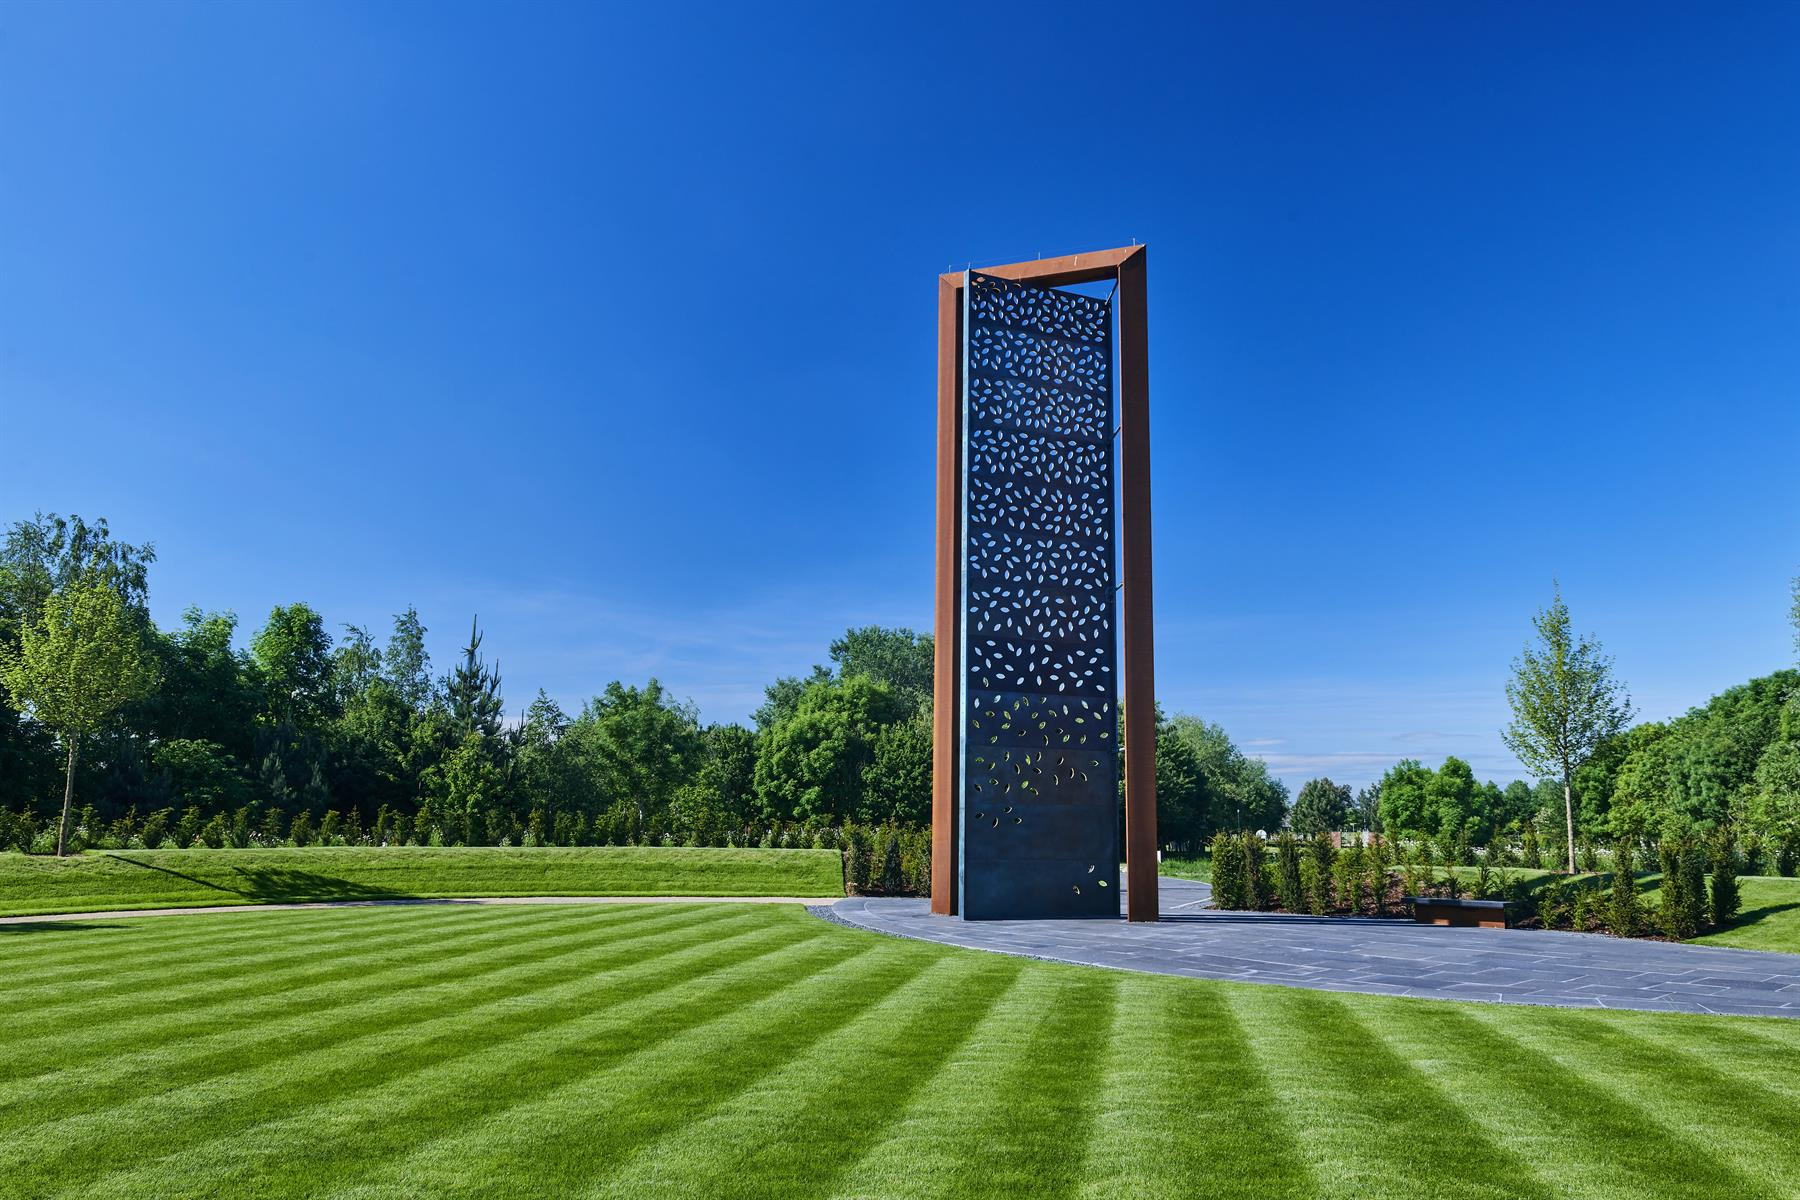 A ground level image of the UK Police Memorial